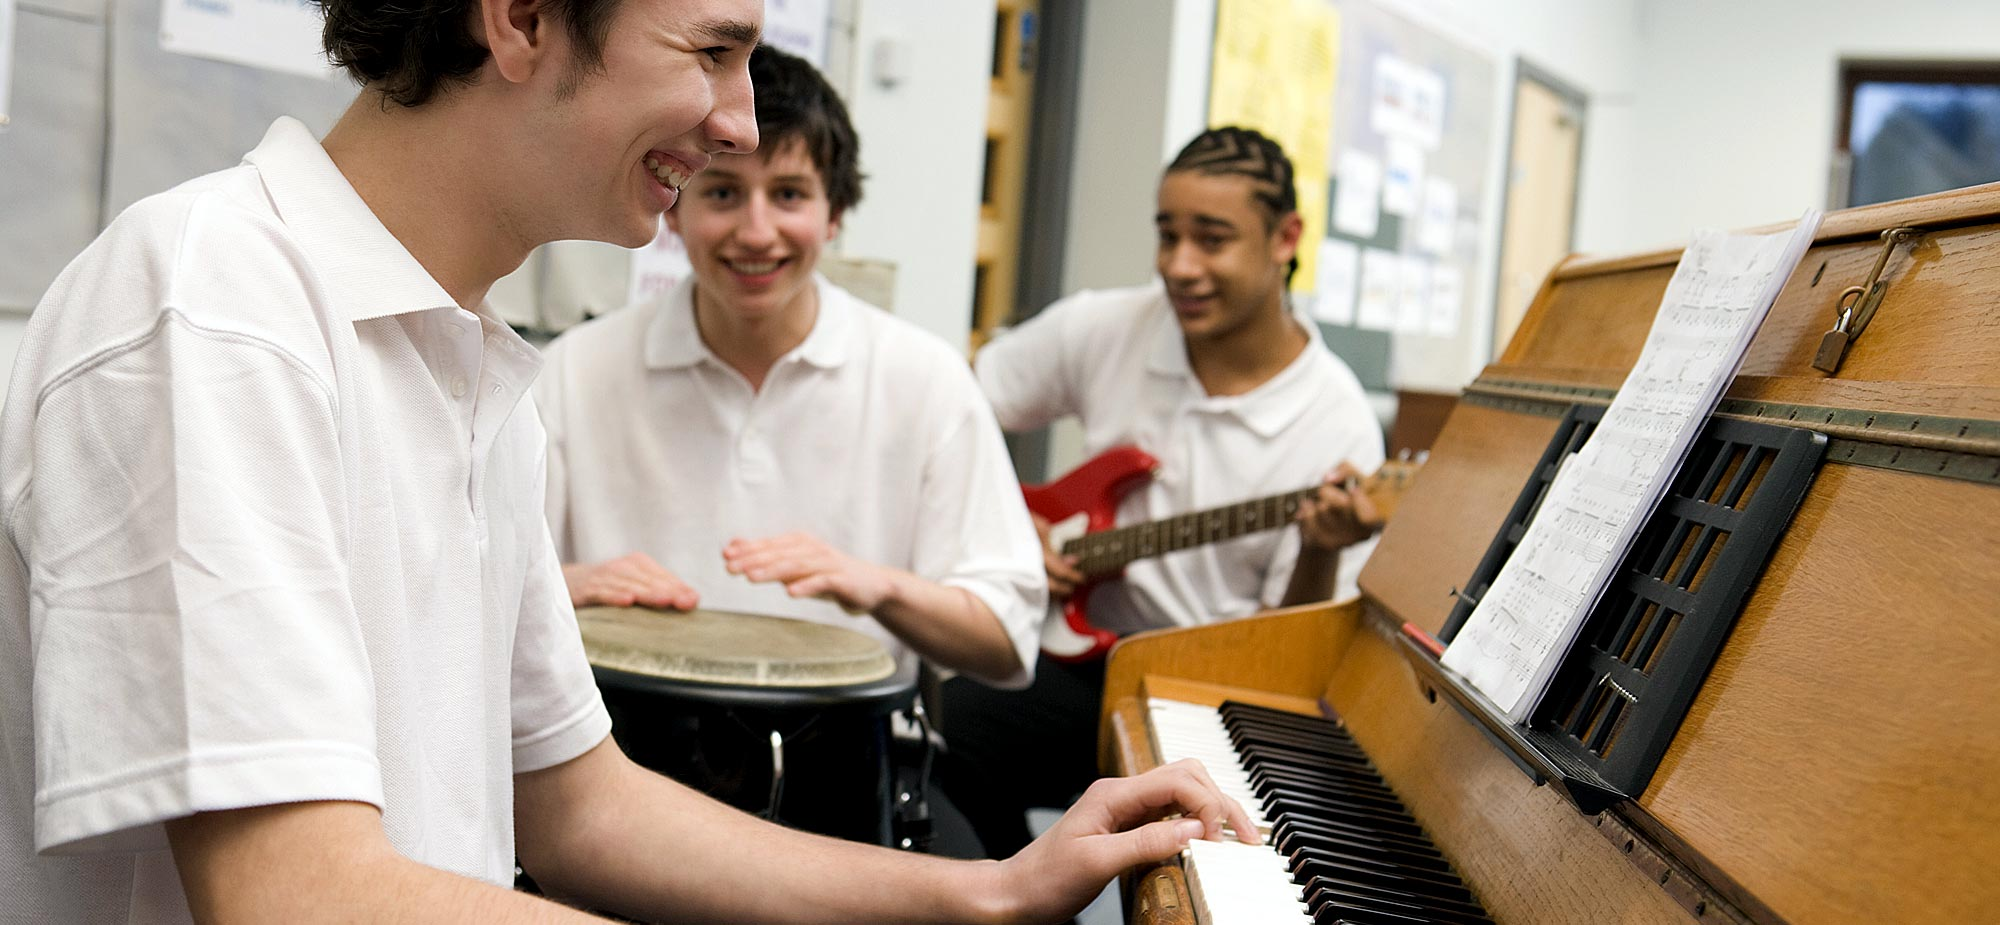 Music Ensembles & Rehearsals @ St. Lucie Music Lessons in Port St. Lucie, FL